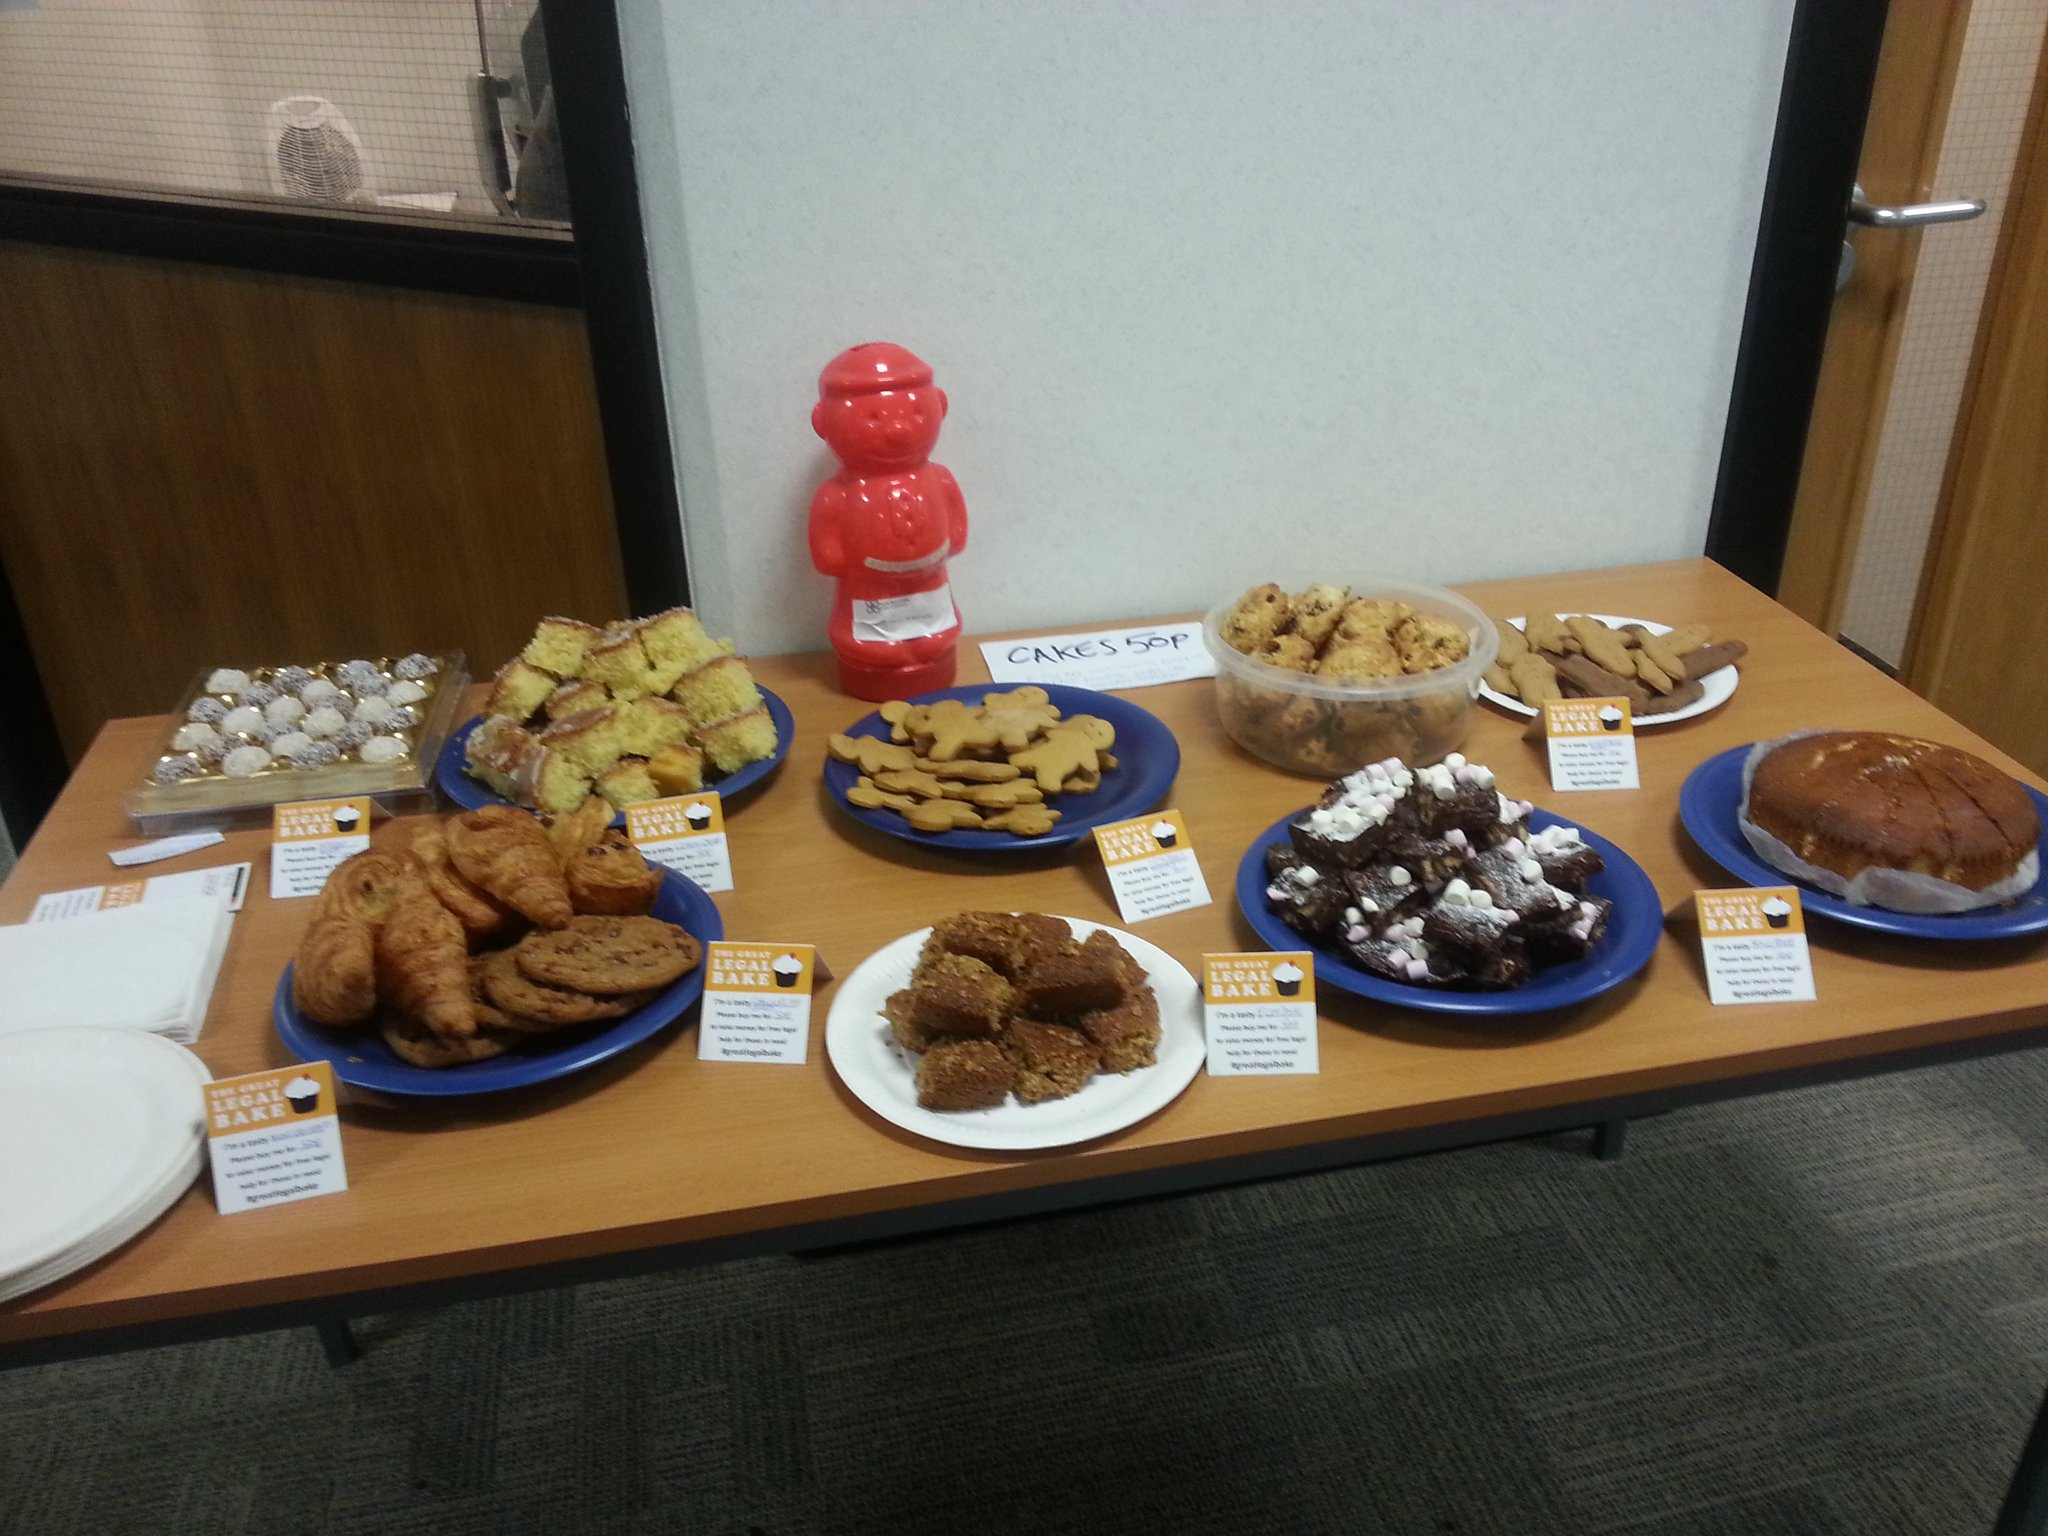 In #Croydon? Come to our 2nd #GreatLegalBake sale of the week in Davis House! Our team have been busy baking some delicious things #lctoday https://t.co/f2K5csDGO0